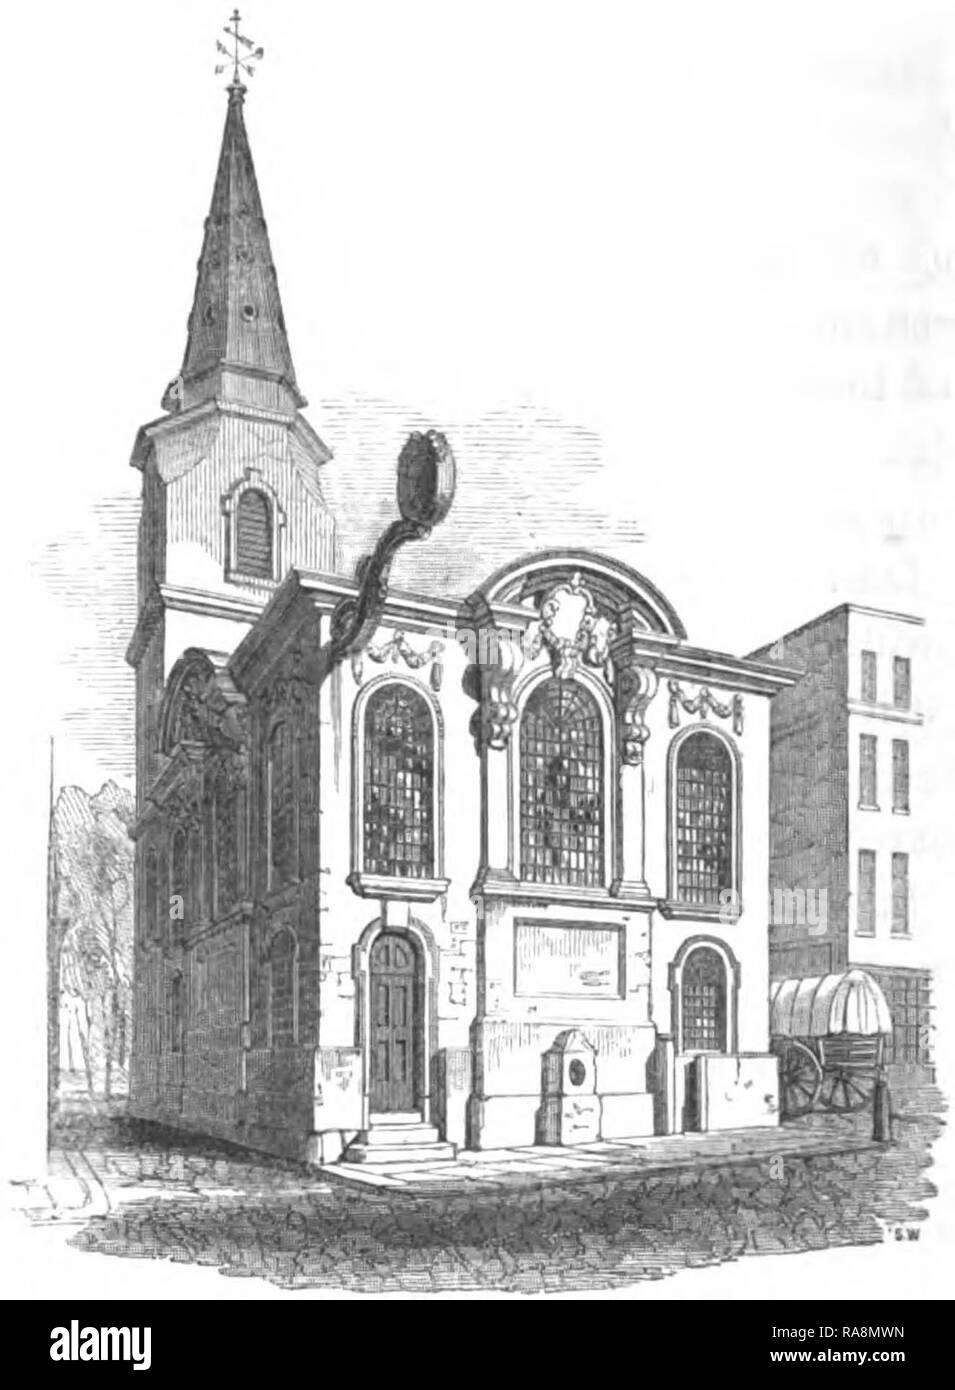 The Church of St Swithin London Stone - Stock Image